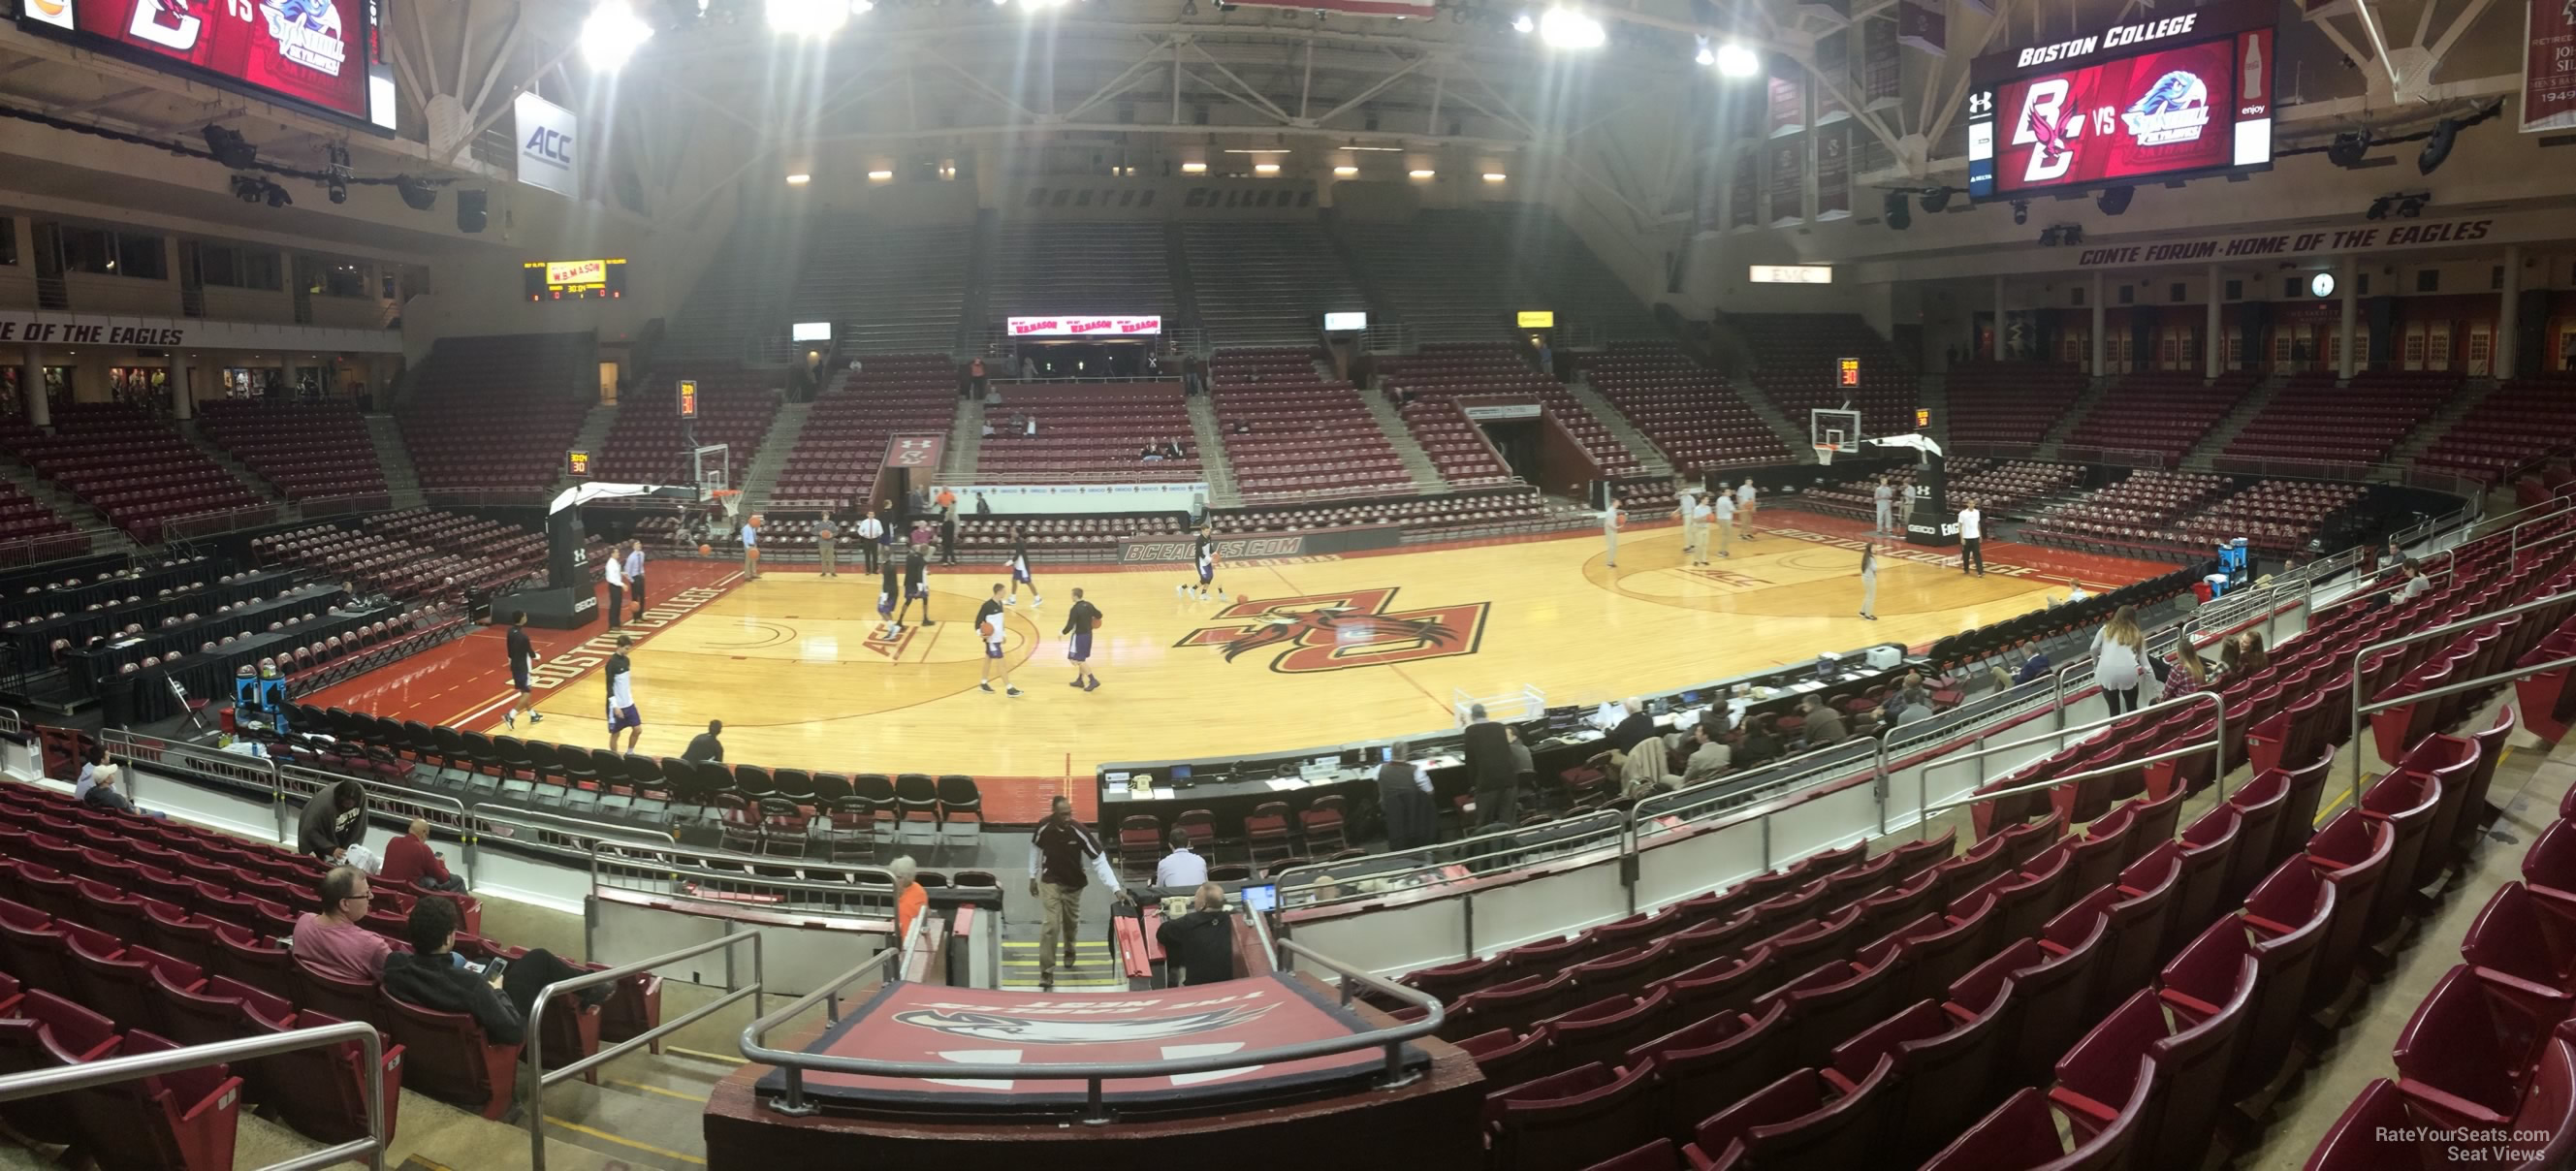 Conte forum section m rateyourseats com